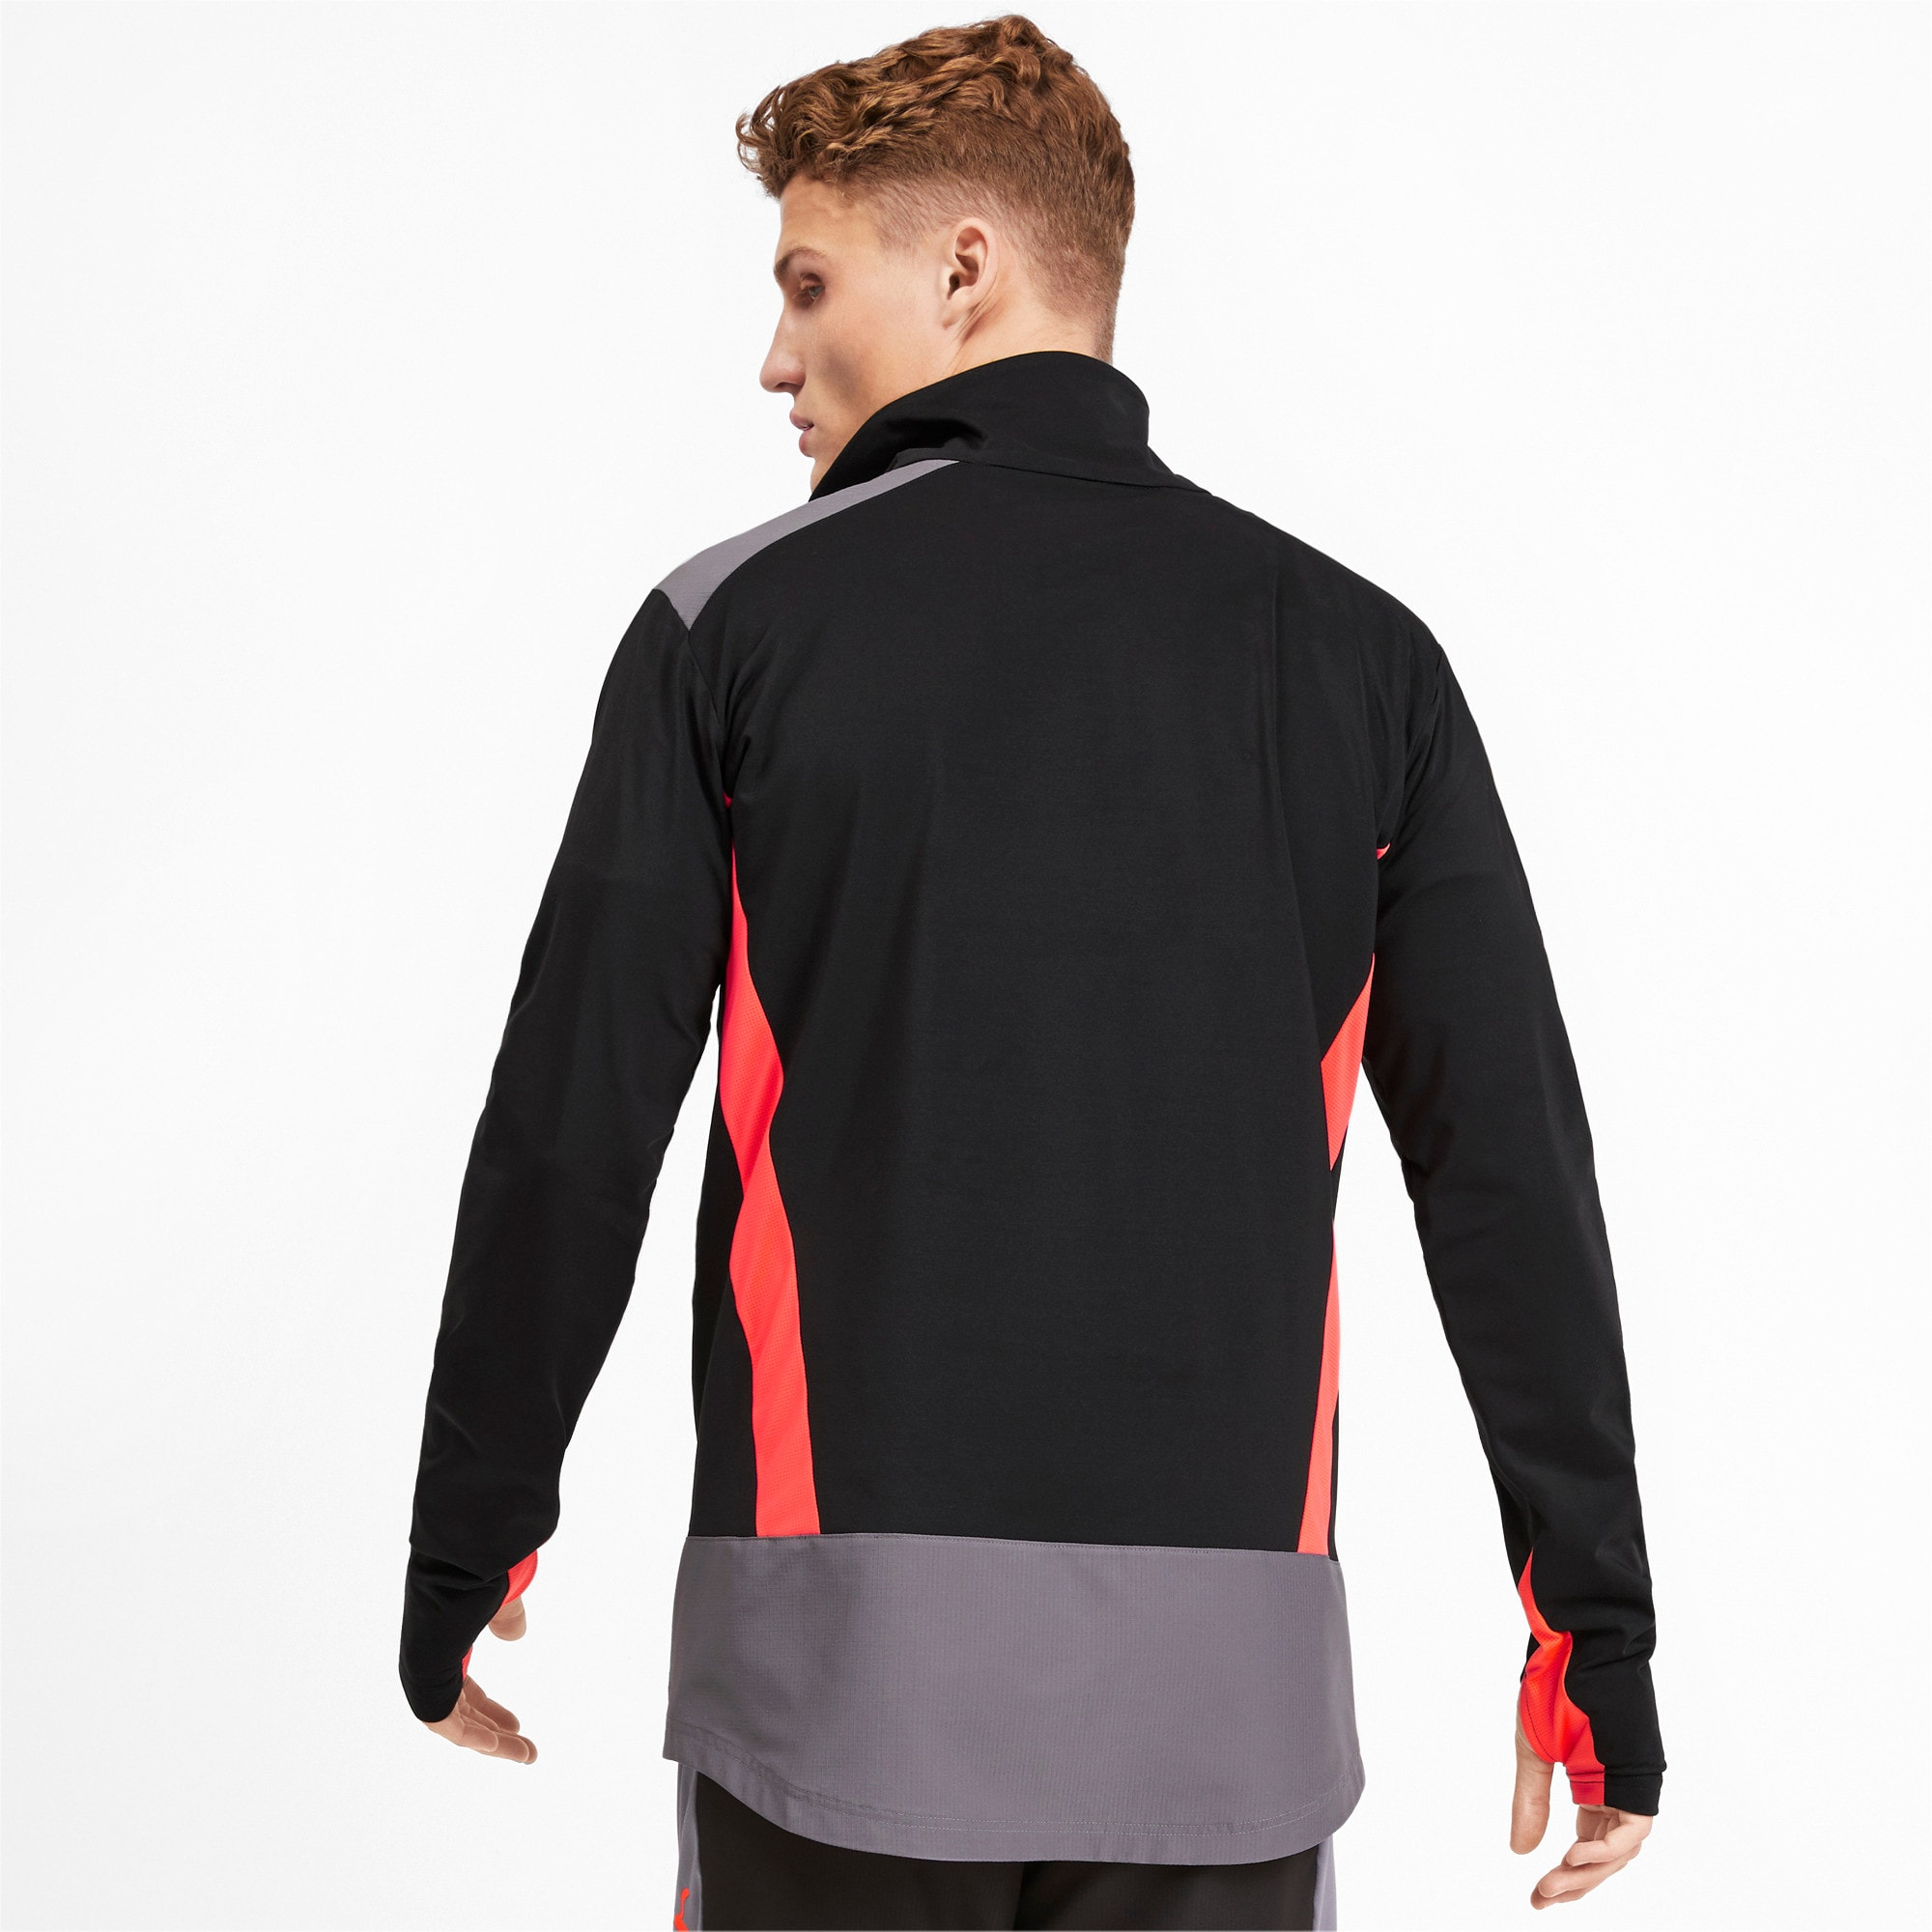 Thumbnail 2 of Quarter Zip Men's Top, Puma Black-Nrgy Red, medium